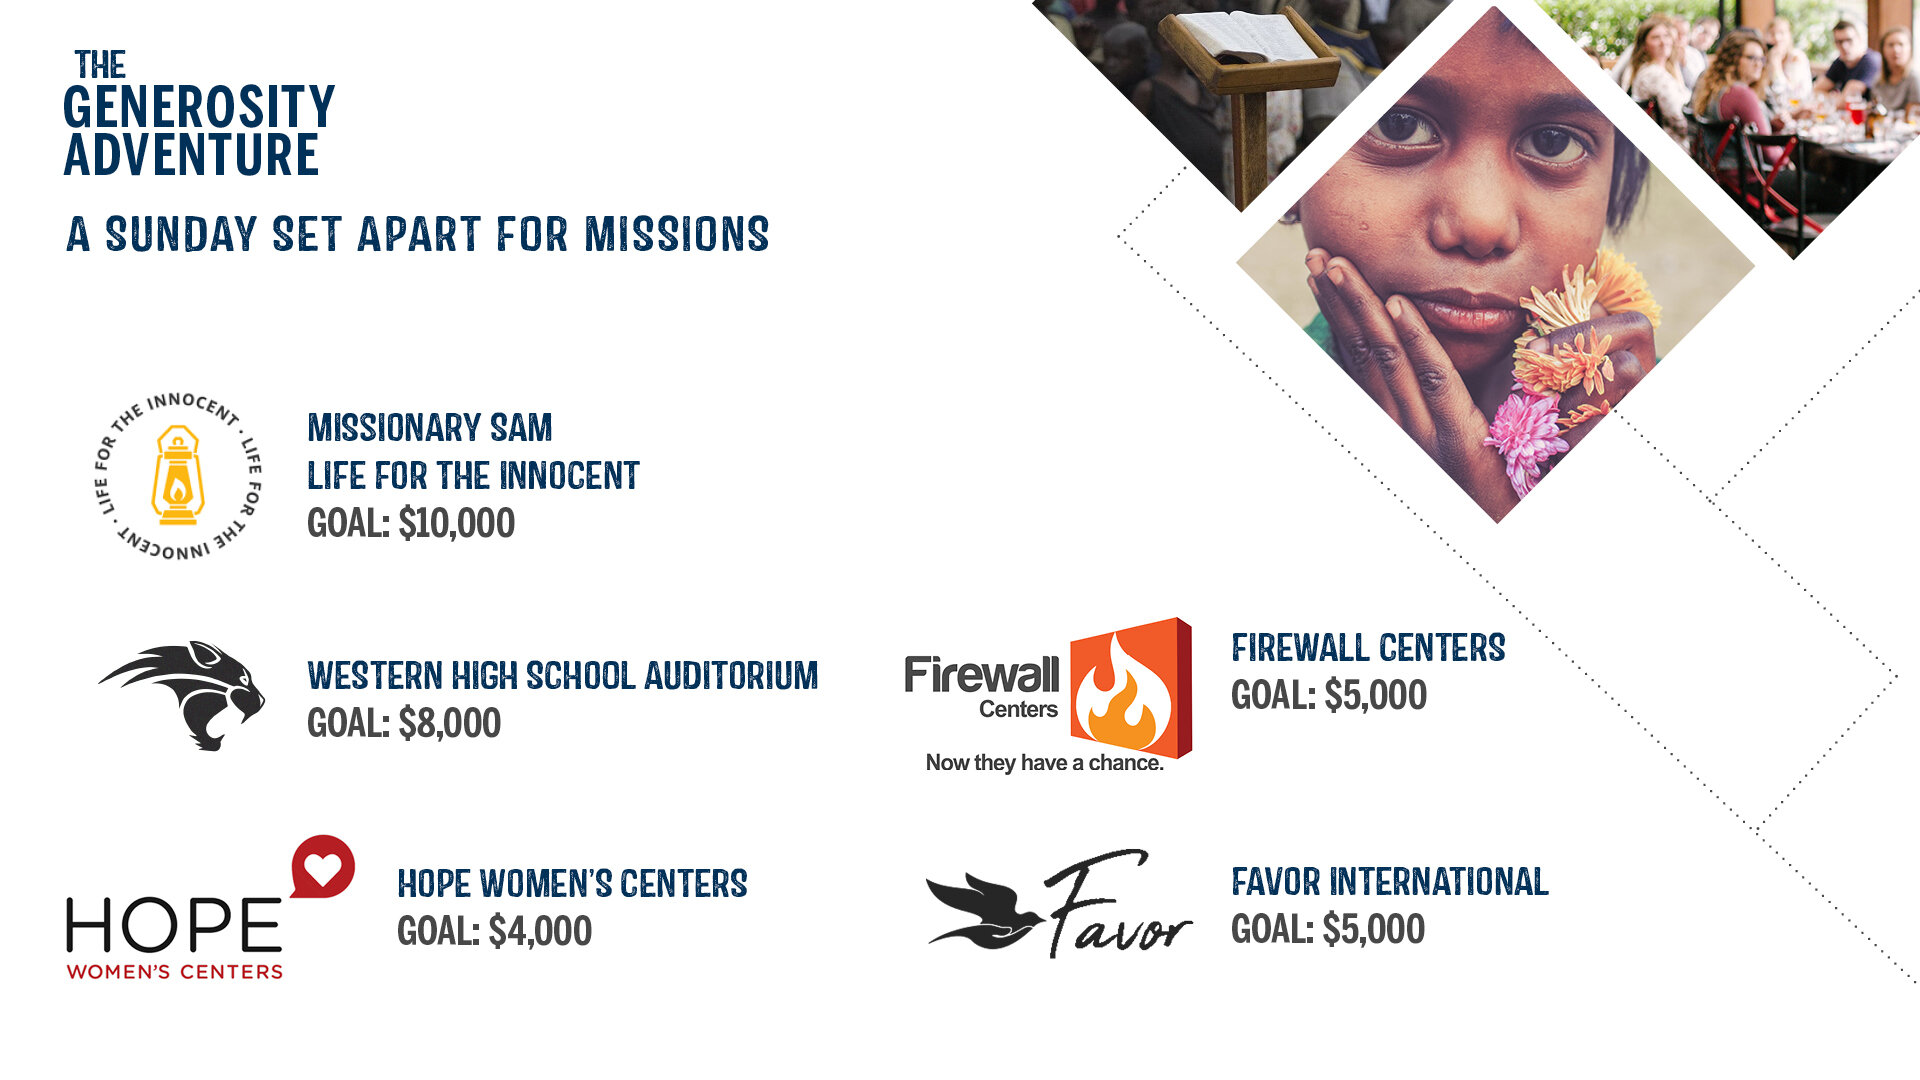 ghsfl_generosity_adventure_2019_announcement_slide_1920x10802.jpg